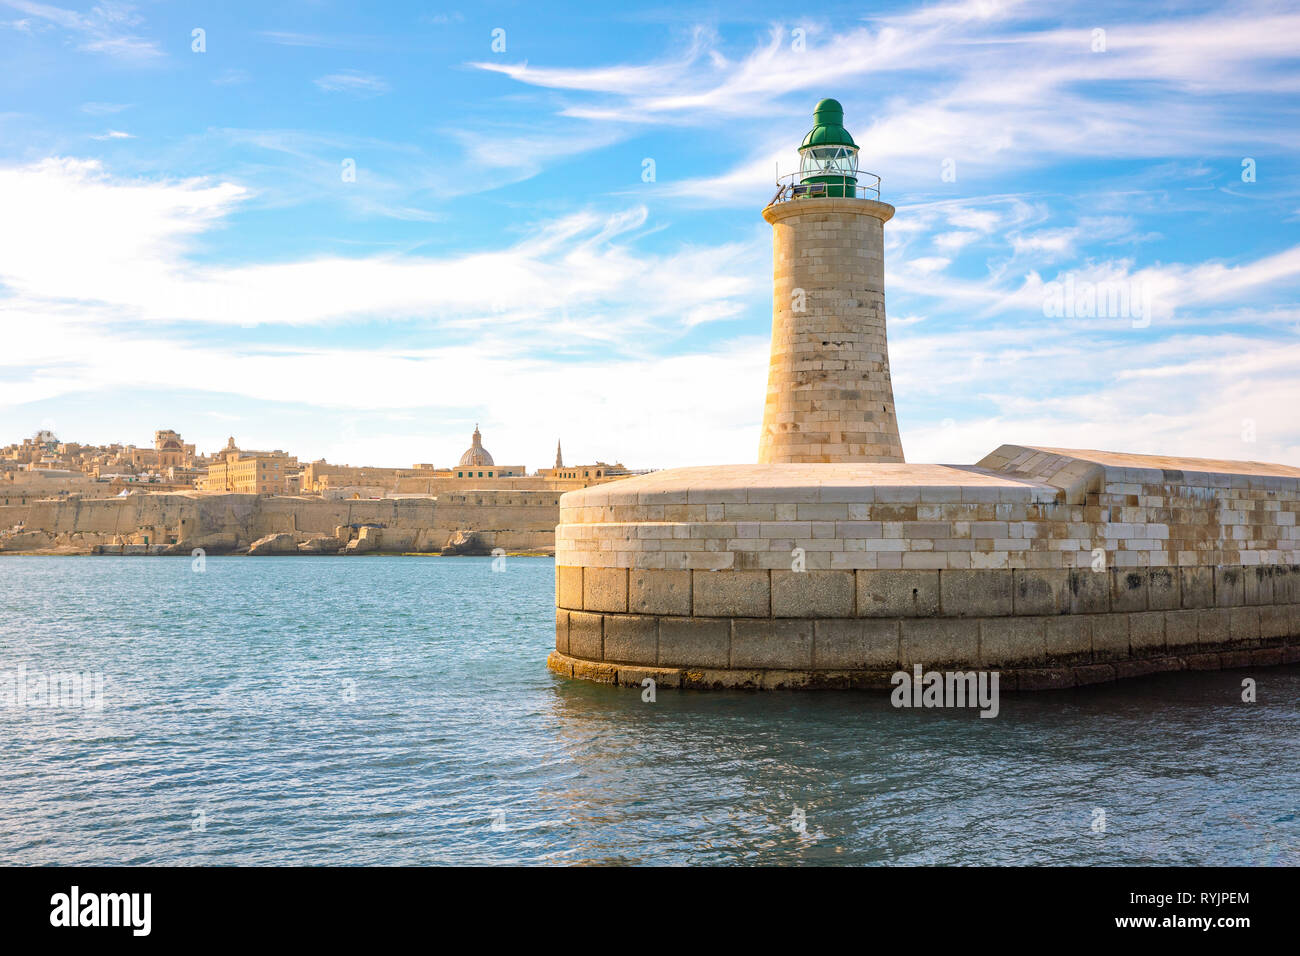 Malta, Valletta, view from the sea of the lighthouse of the St Elmo fort - Stock Image